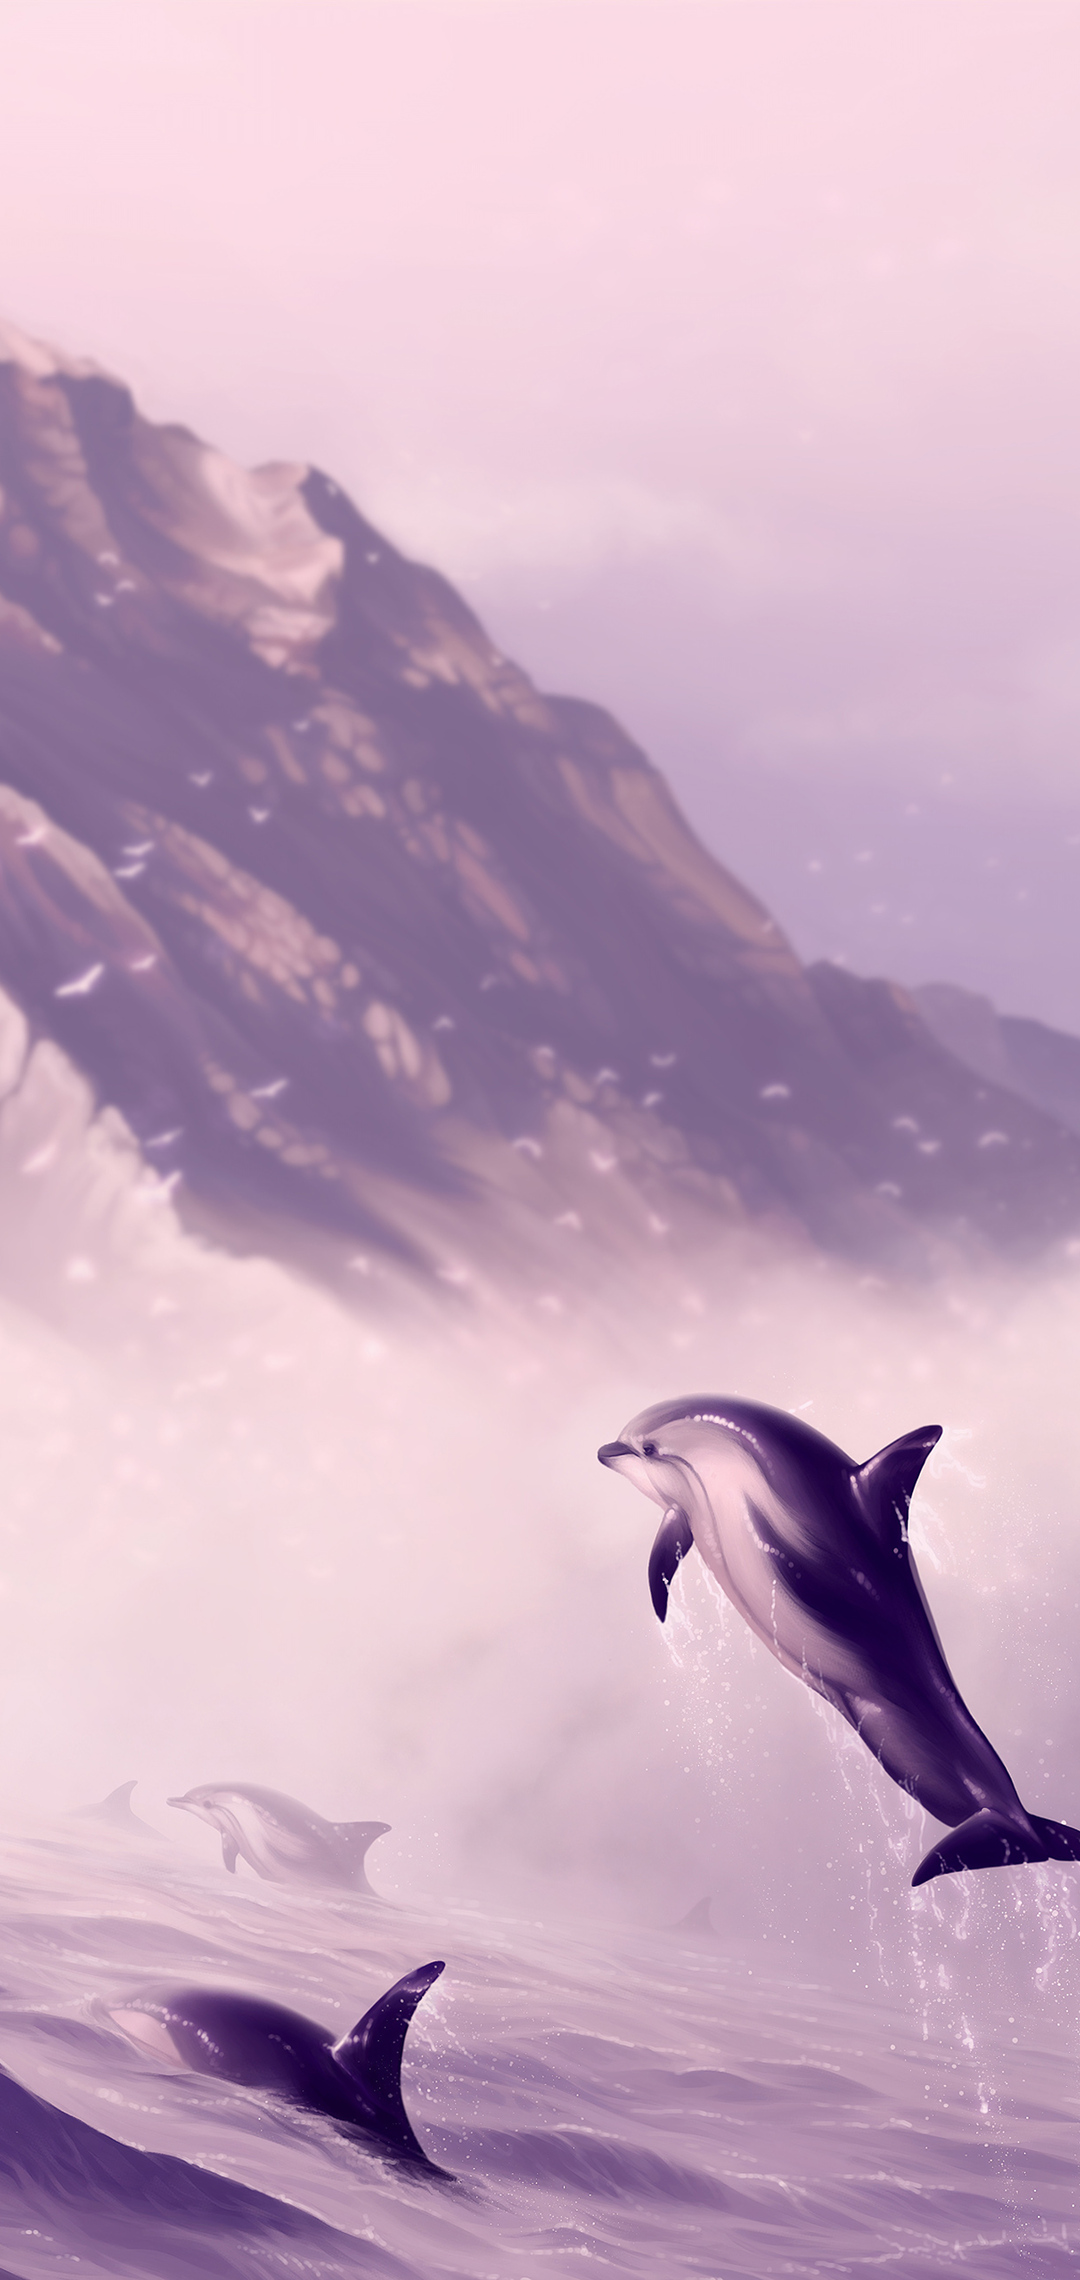 dolphin-jumping-out-of-water-digital-art-h9.jpg